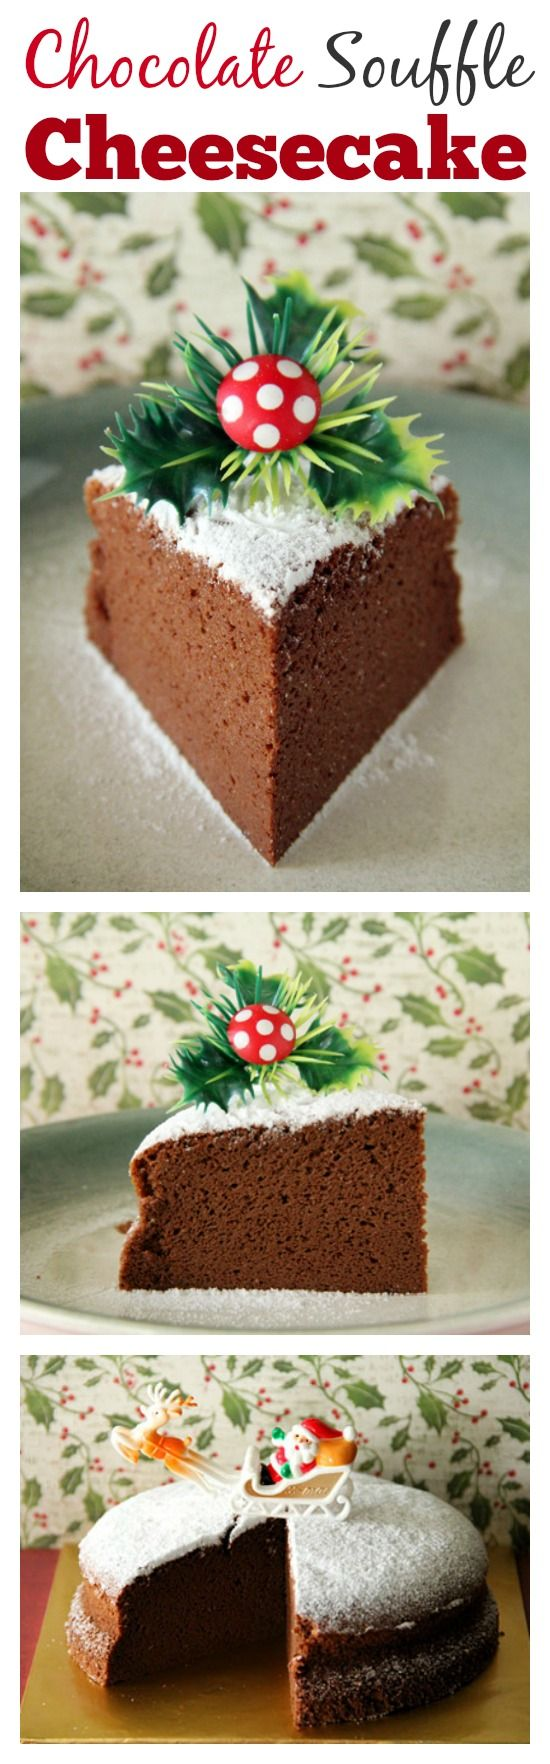 3-ingredients Chocolate Souffle Cheesecake - AMAZING, light, and the BEST cheesecake ever, get the easy recipe | rasamalaysia.com